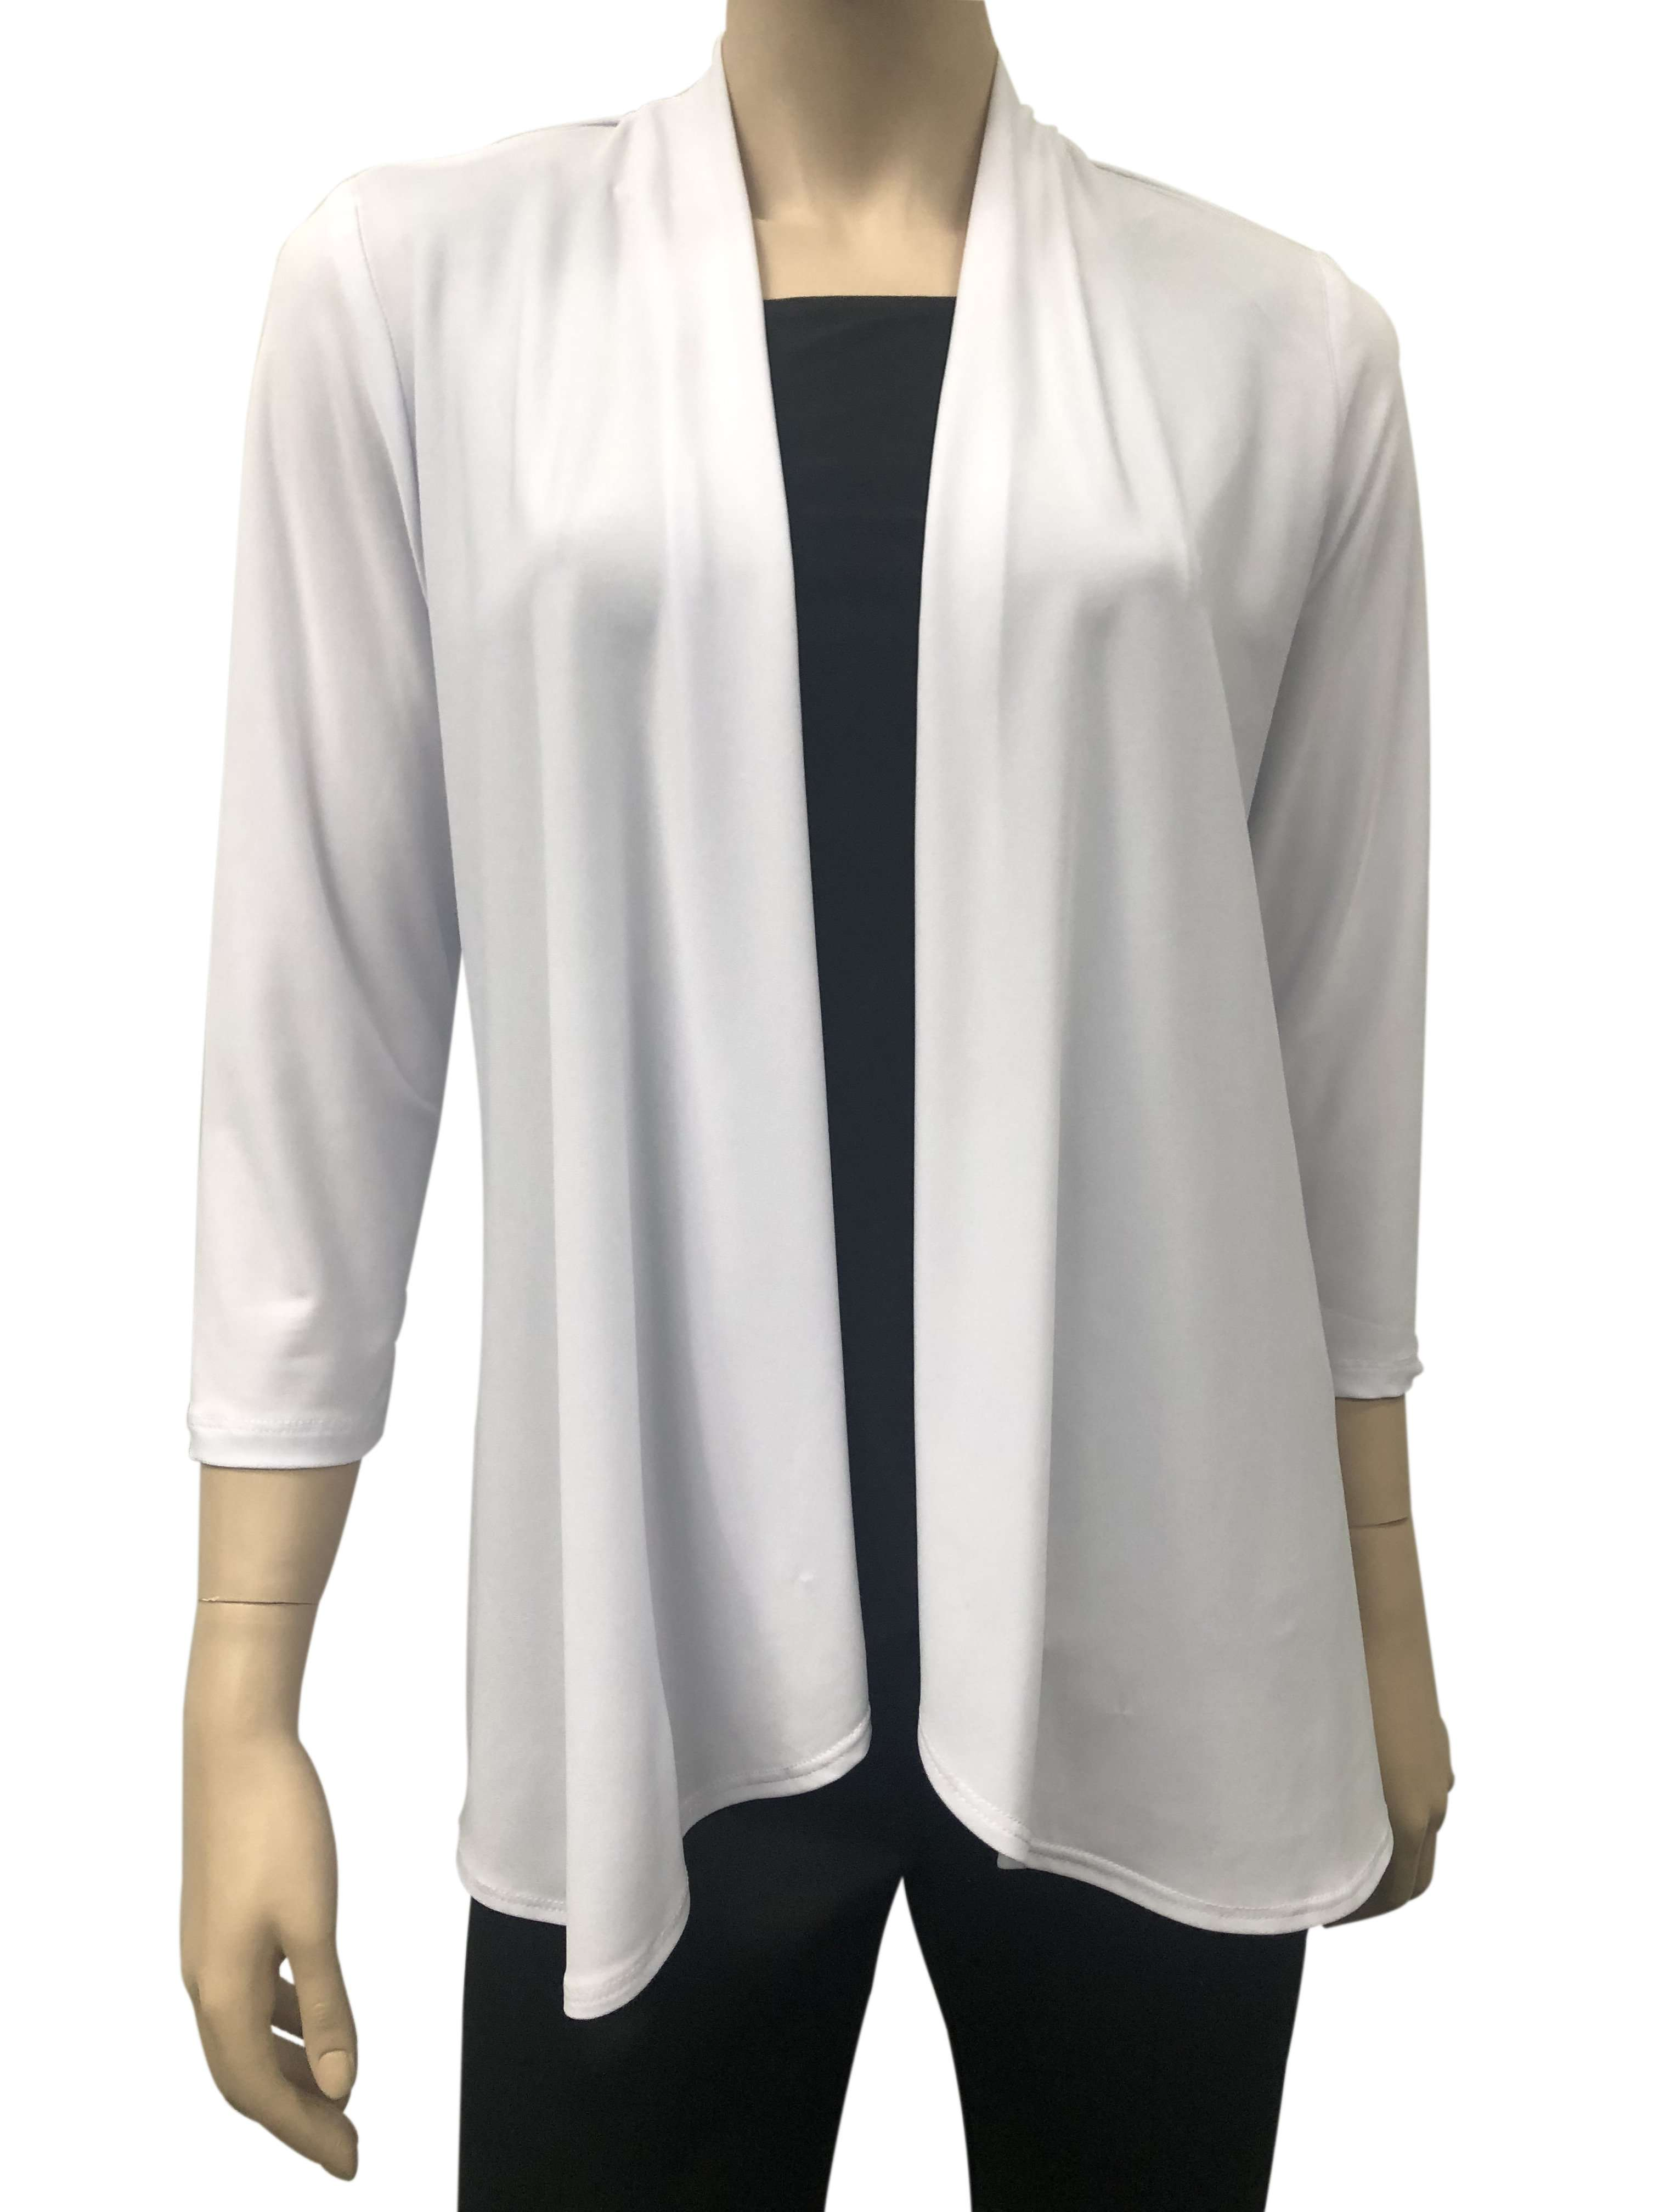 Women's  White Cardigan -Made In Canada- Now 50 Off -Shop Local - Yvonne Marie - Yvonne Marie